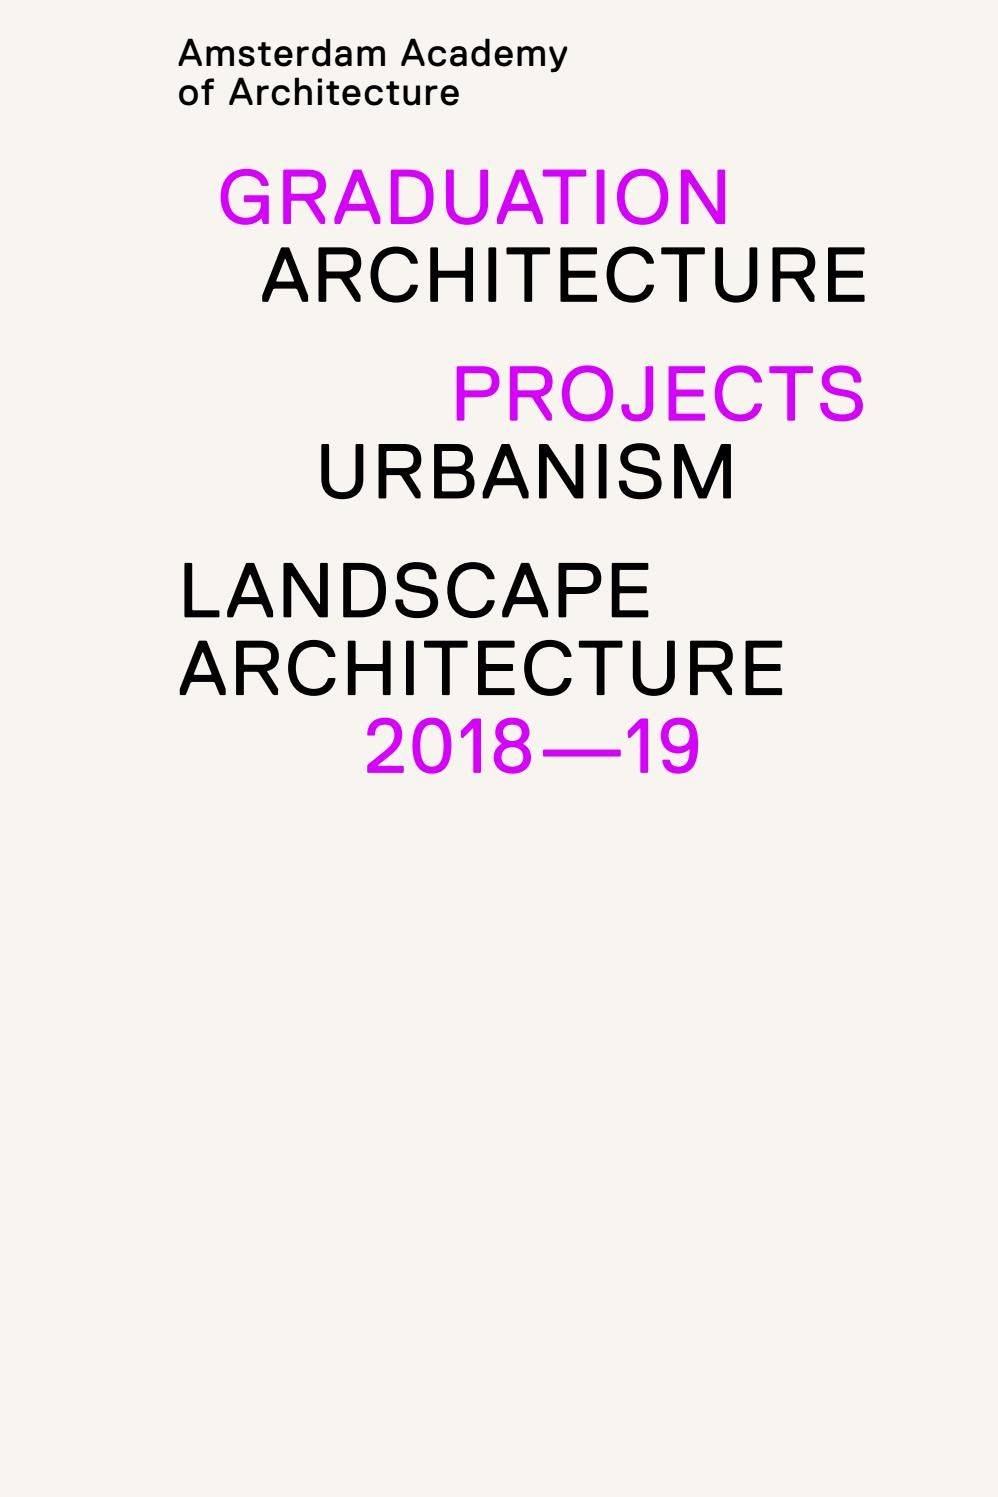 Graduation Projects 2018 2019 By Amsterdam Academy Of Architecture